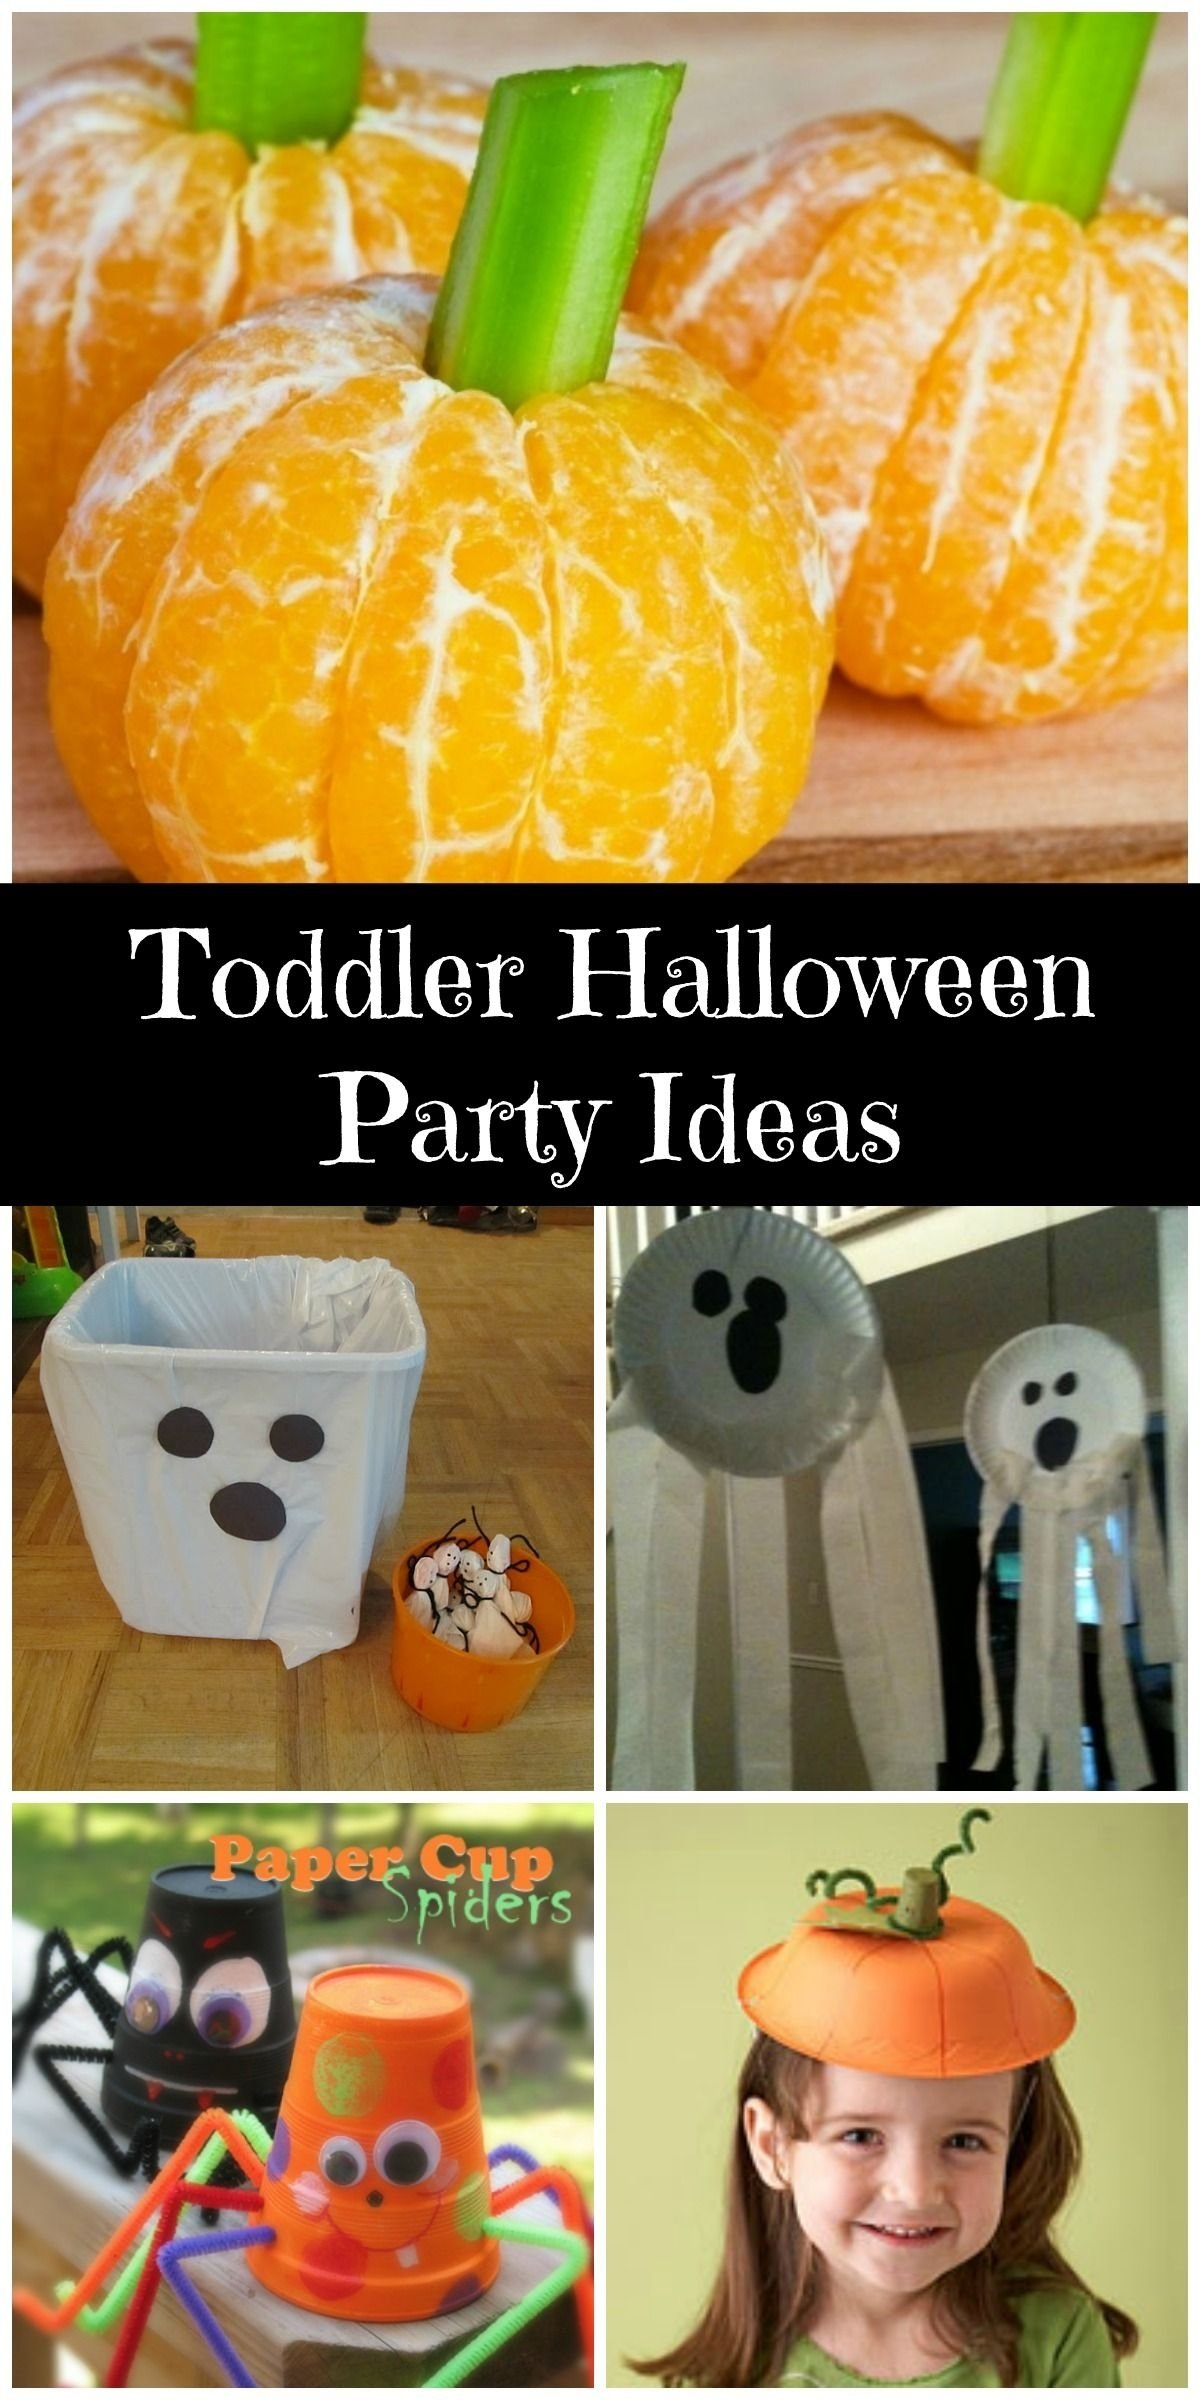 10 Gorgeous Halloween Party Ideas For Toddlers toddler halloween party toddler halloween parties toddler 2020